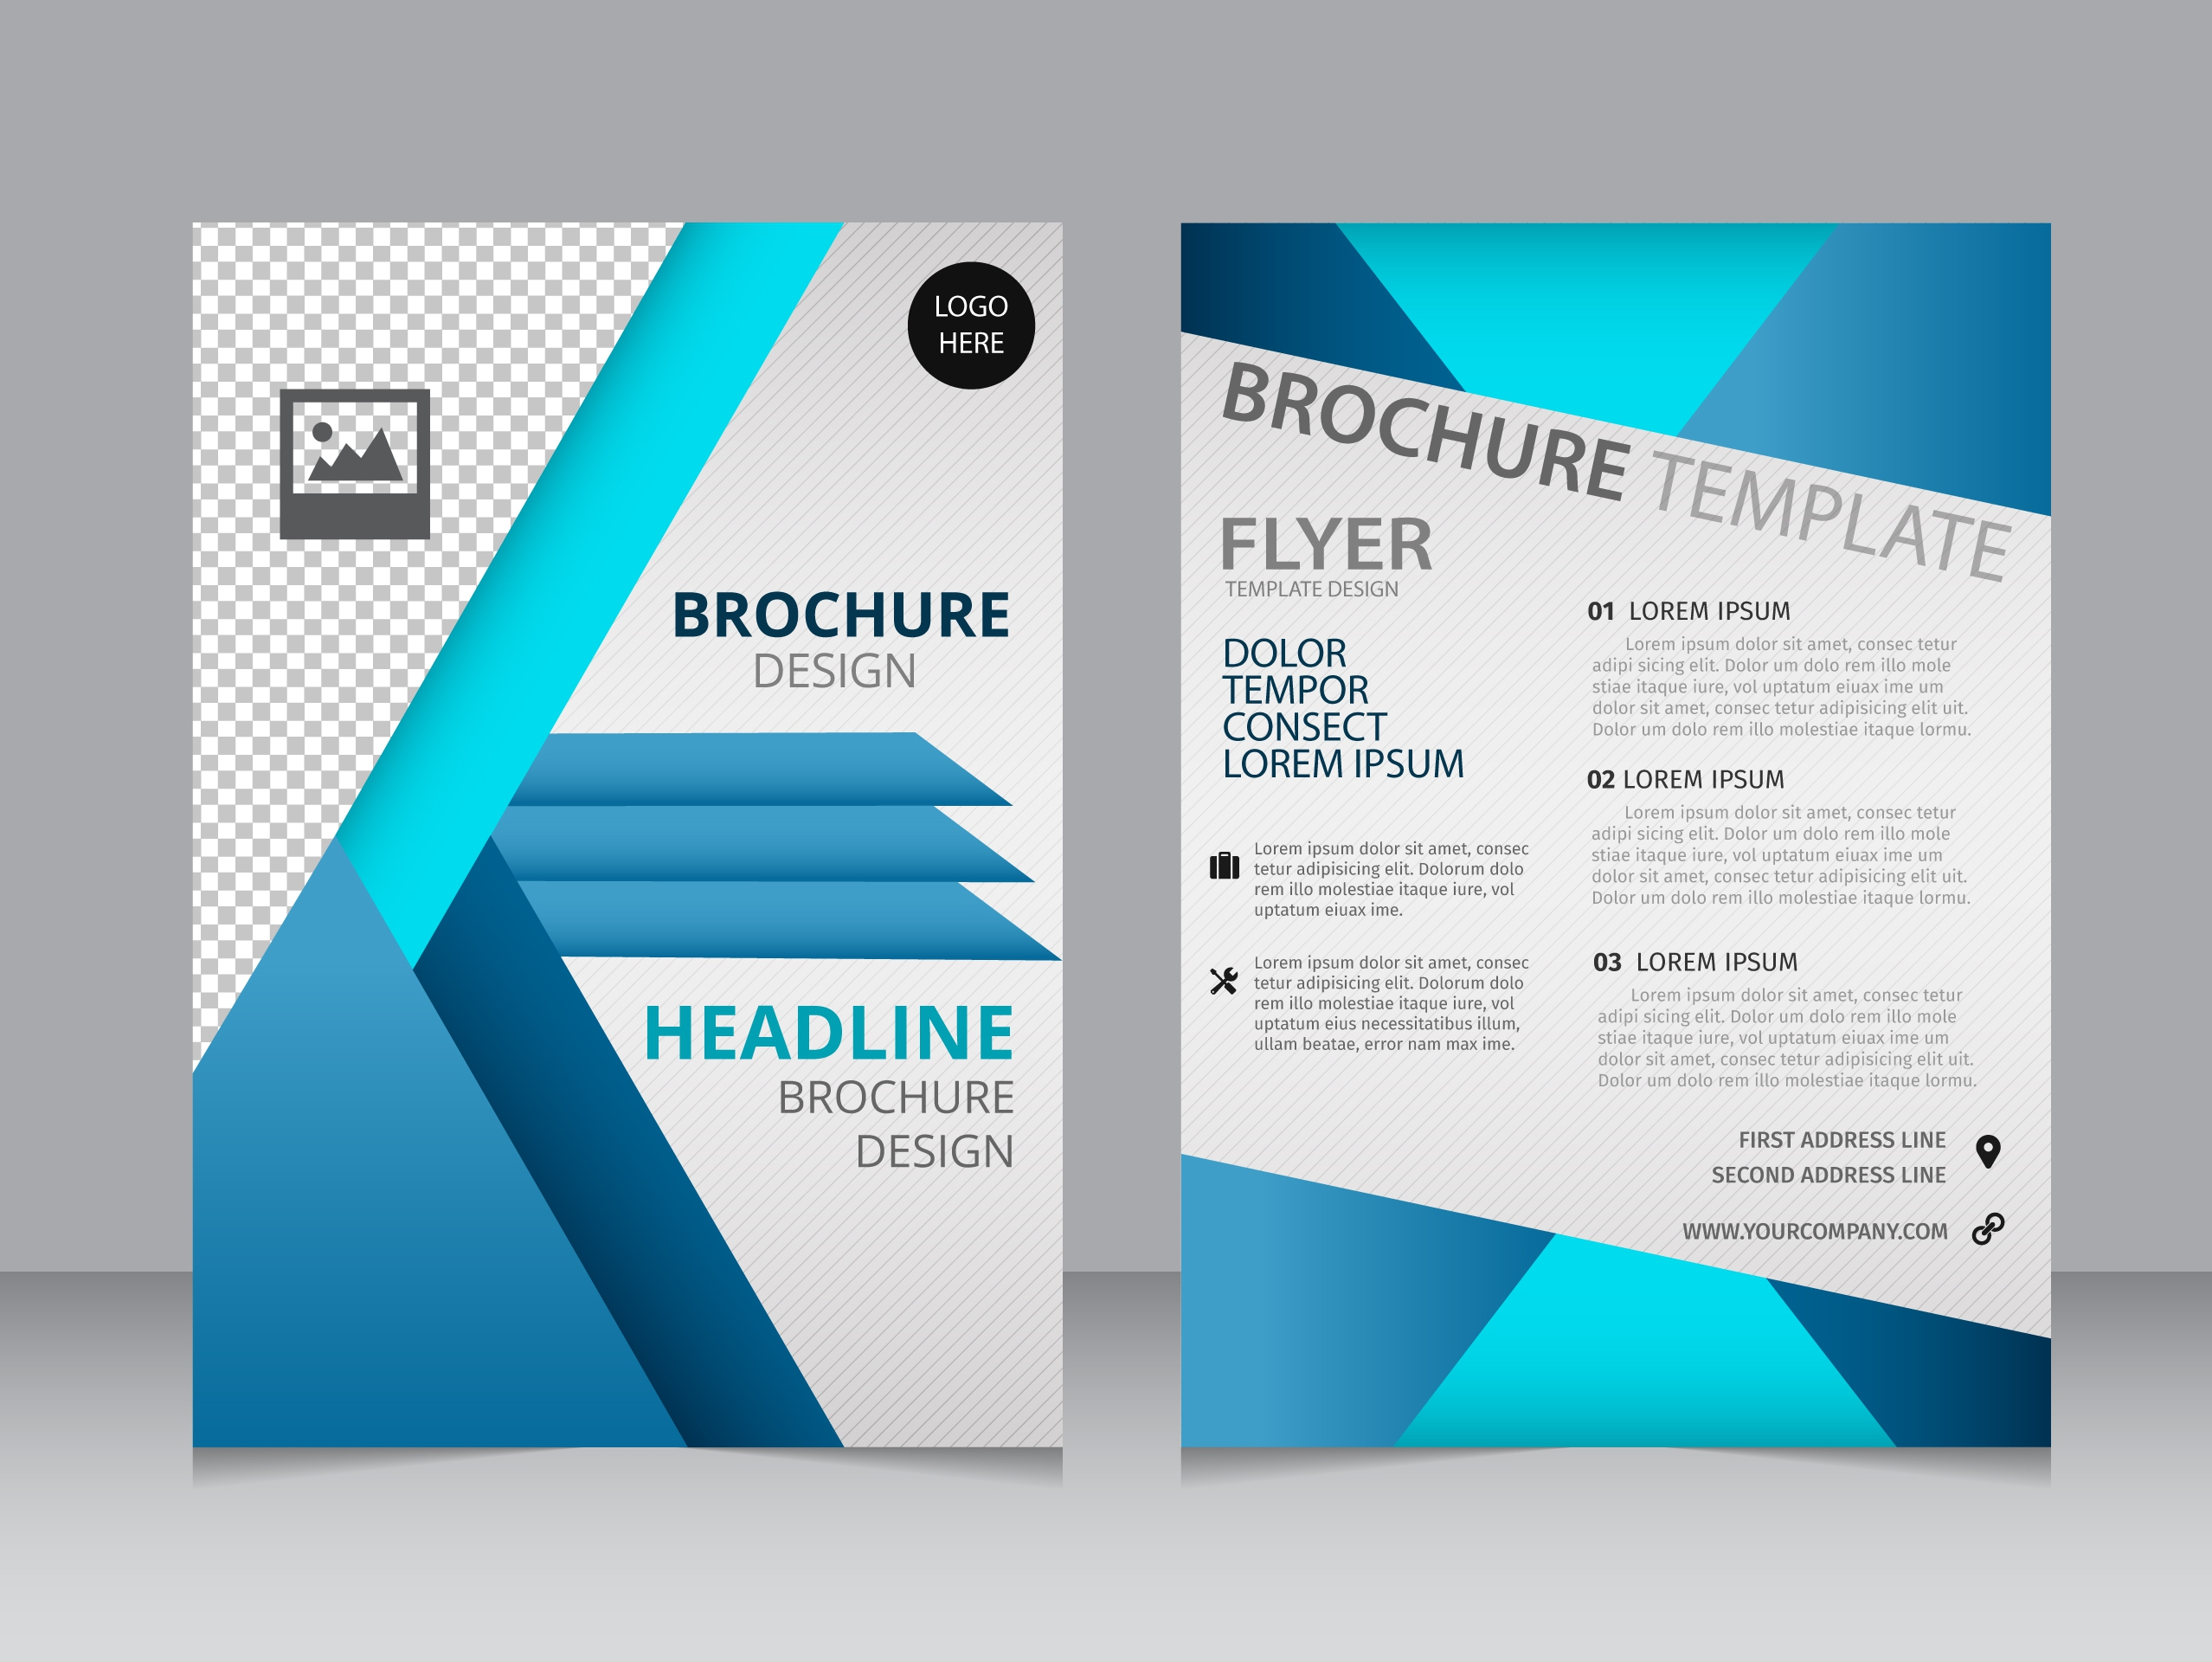 brochure design templates free download - 11 free sample travel brochure templates printable samples